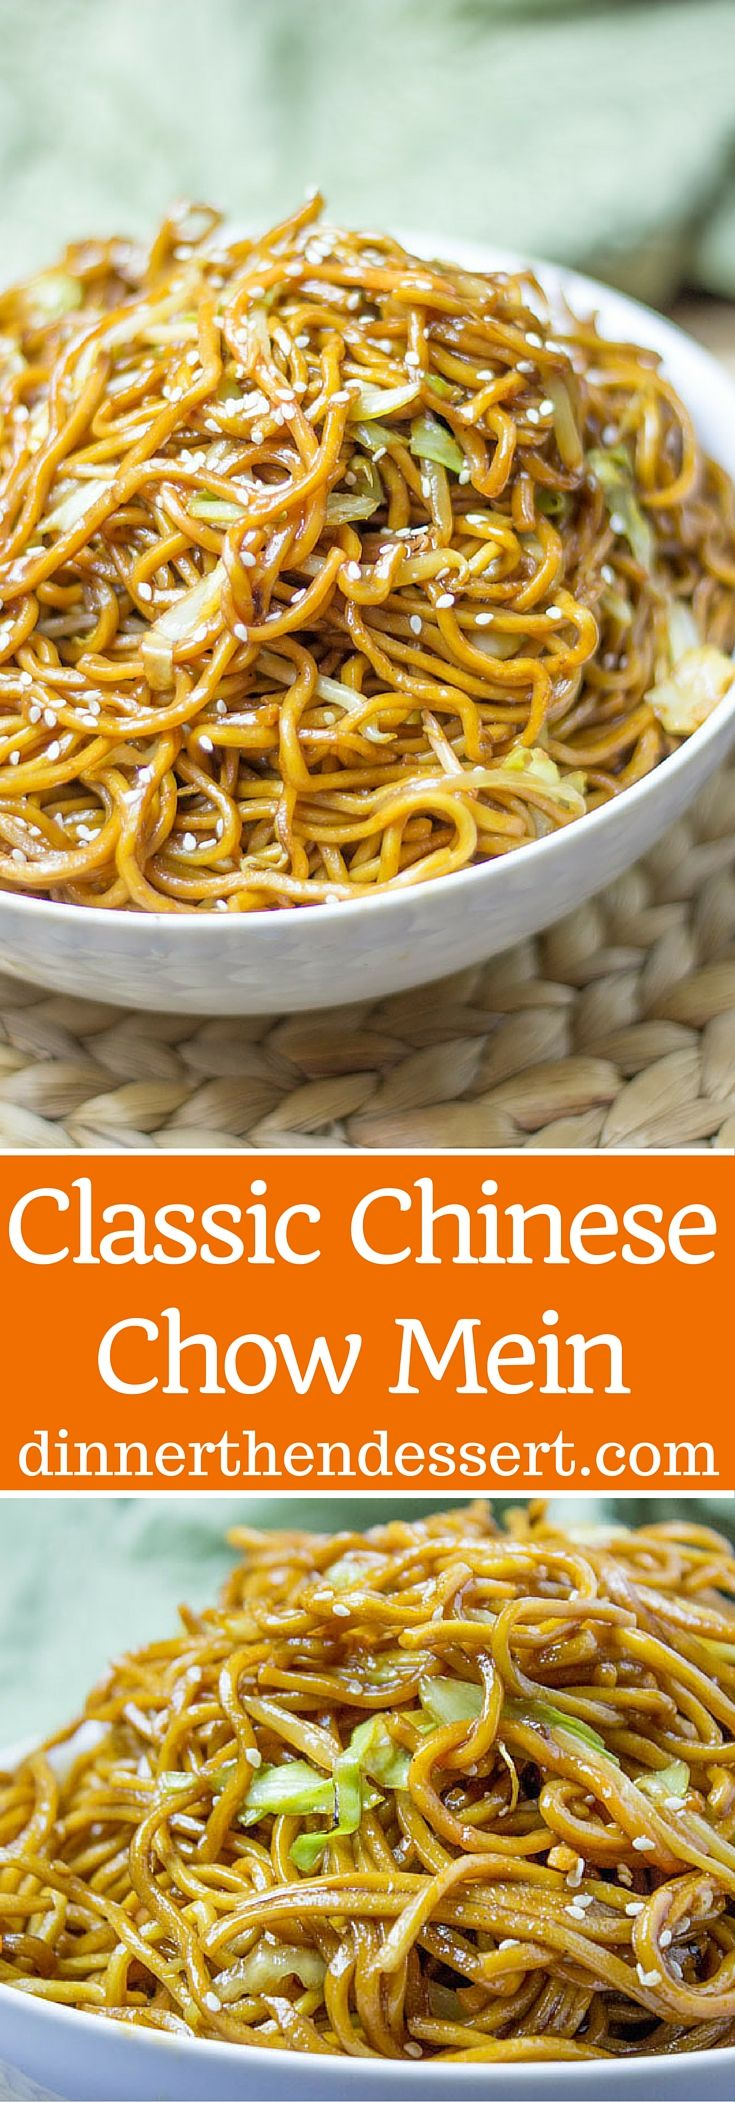 389 best delicious eats images on pinterest kitchens petit sub for vegan mushroom oyster sauce classic chinese chow mein with authentic ingredients and easy ingredient swaps to make this a pantry meal in a pinch forumfinder Image collections